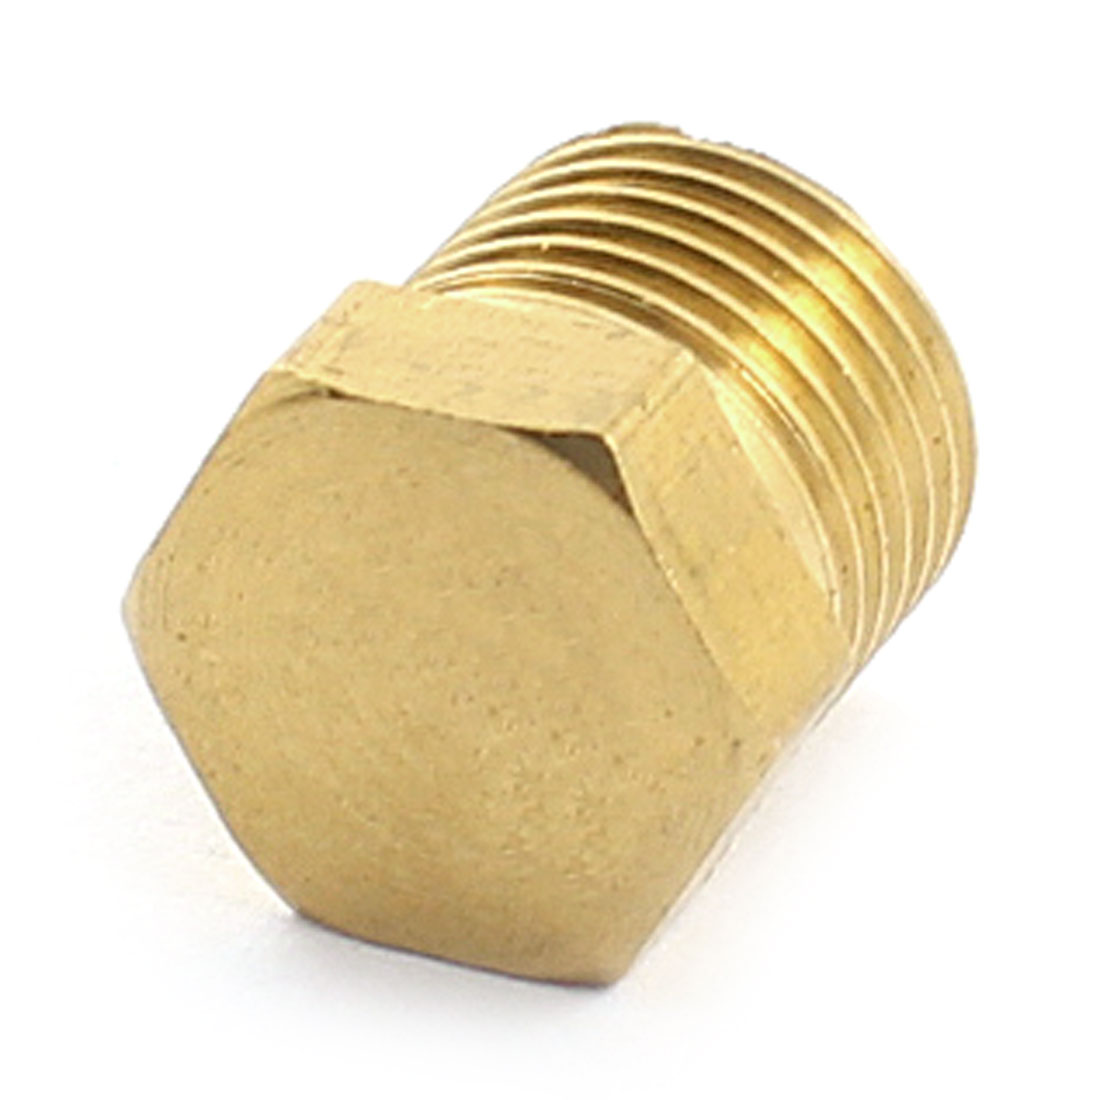 1/8PT Male Thread 11mm Height Brass Hex Socket Head Pipe Plug Connector Coupler Coupling